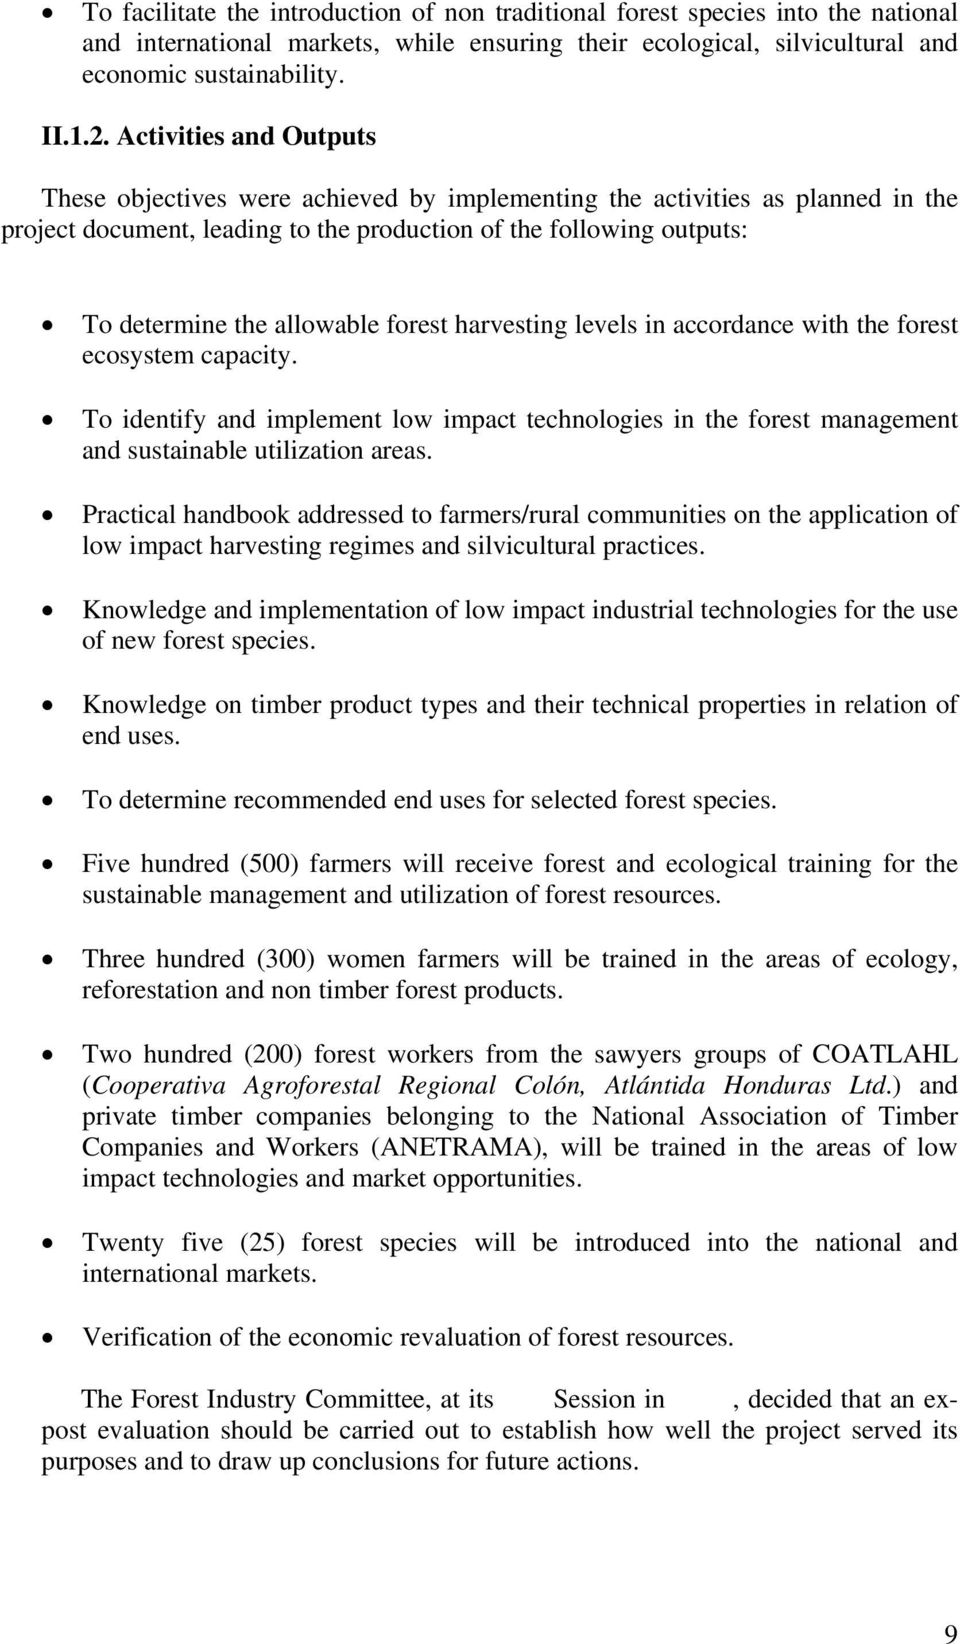 forest harvesting levels in accordance with the forest ecosystem capacity. To identify and implement low impact technologies in the forest management and sustainable utilization areas.